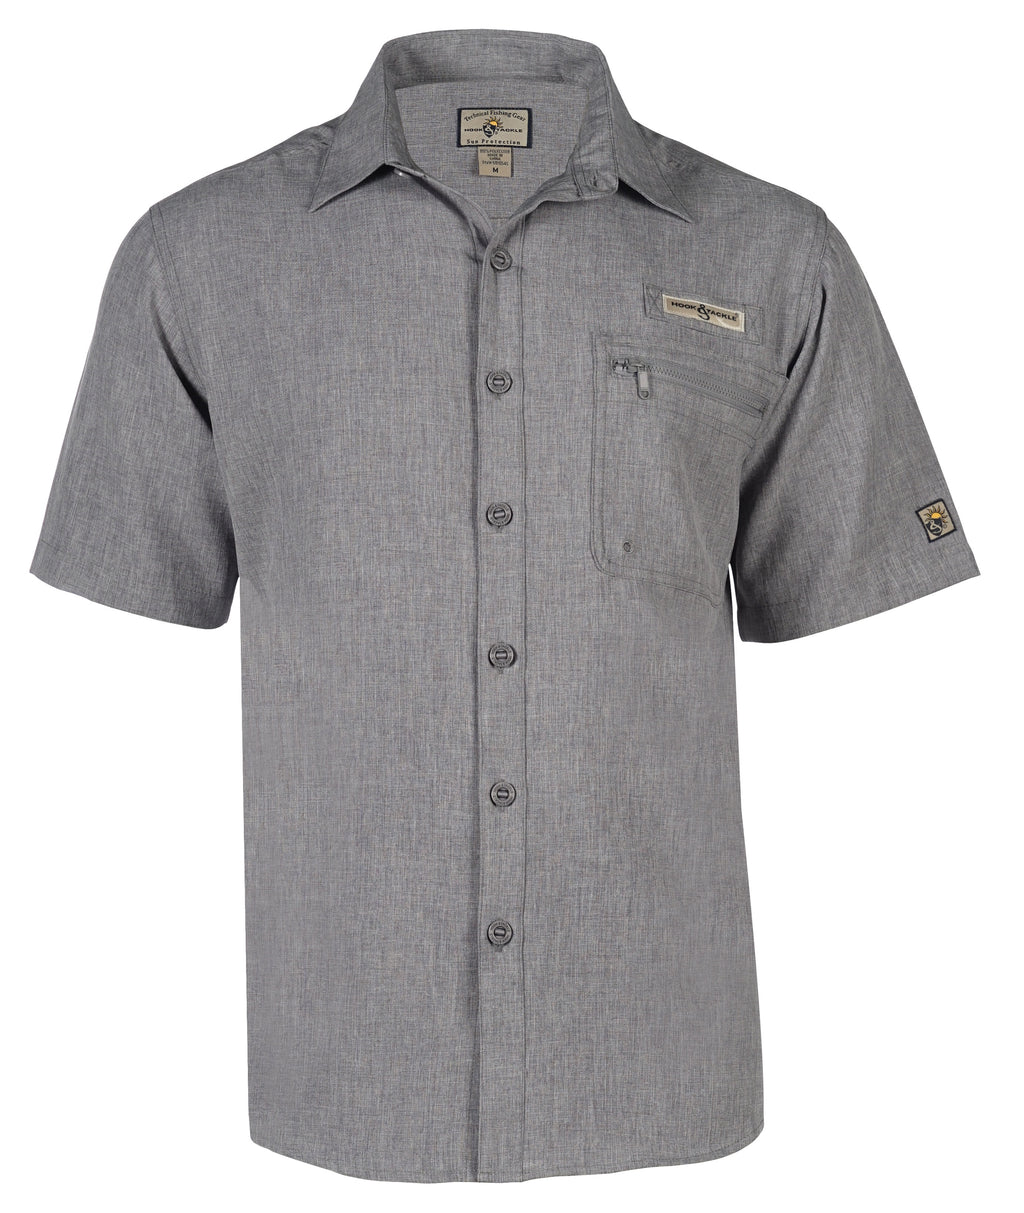 Hook & Tackle Tamarindo Short Sleeve Fishing Shirt, Charcoal